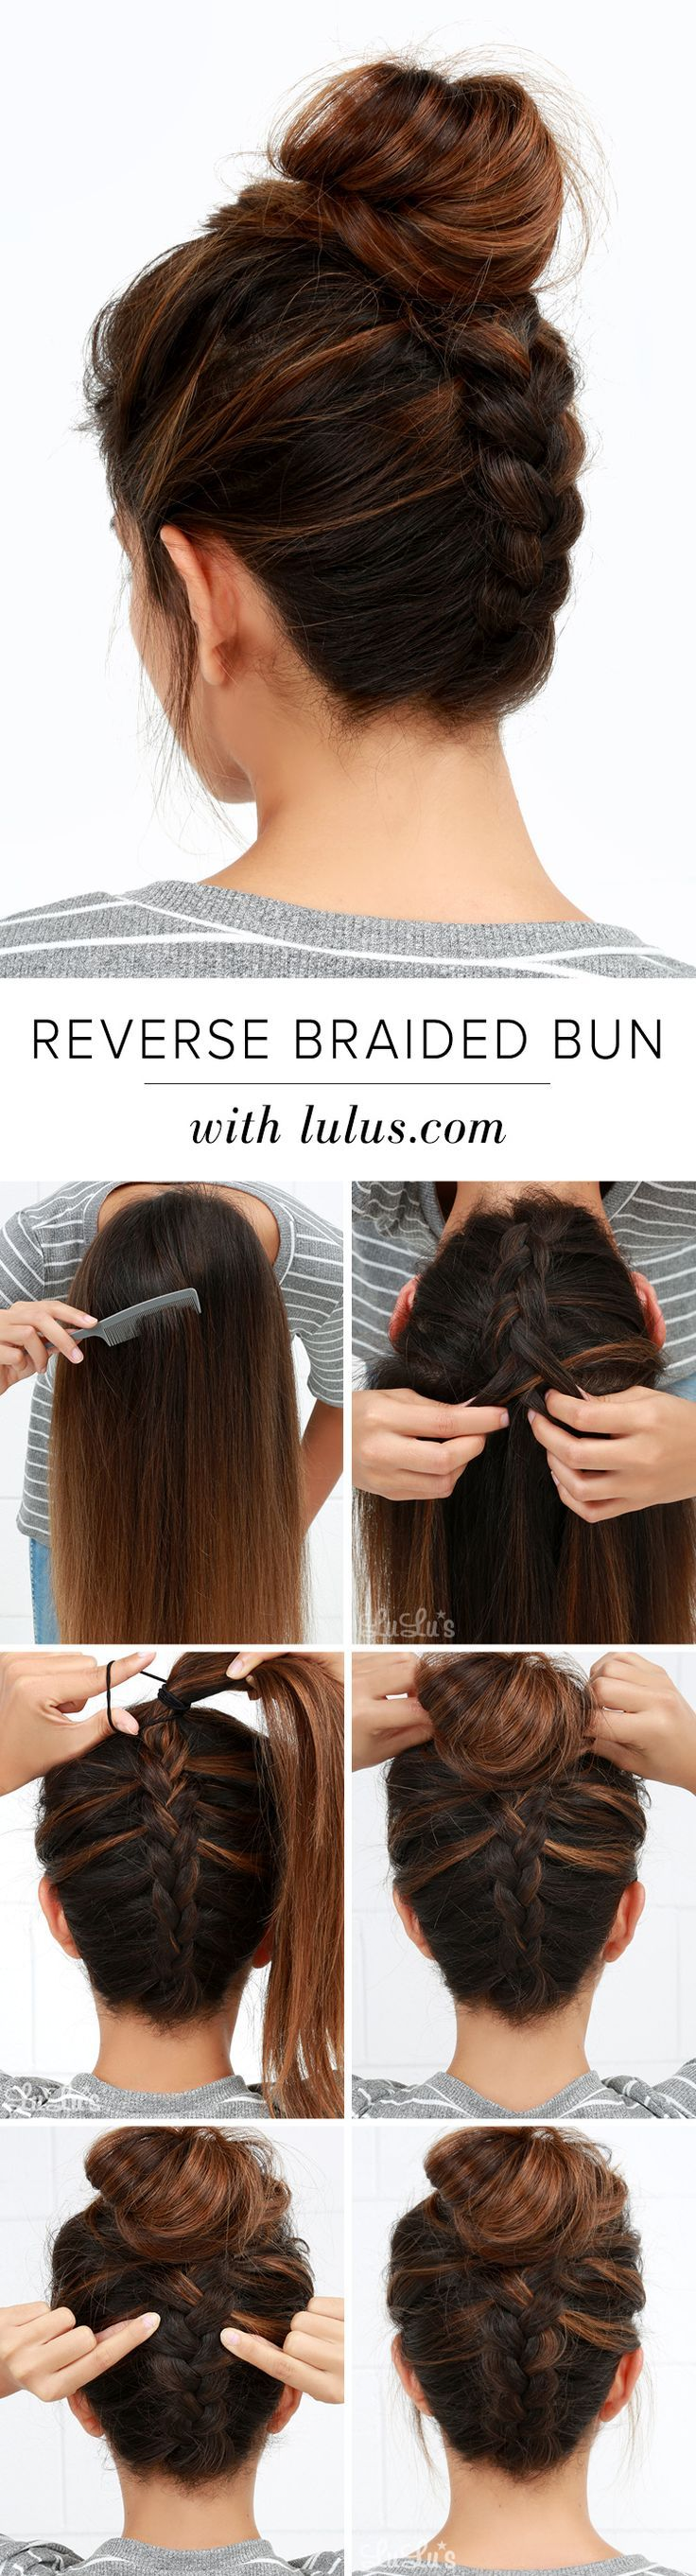 Lulus howto reverse braided bun hair tutorial bun hair